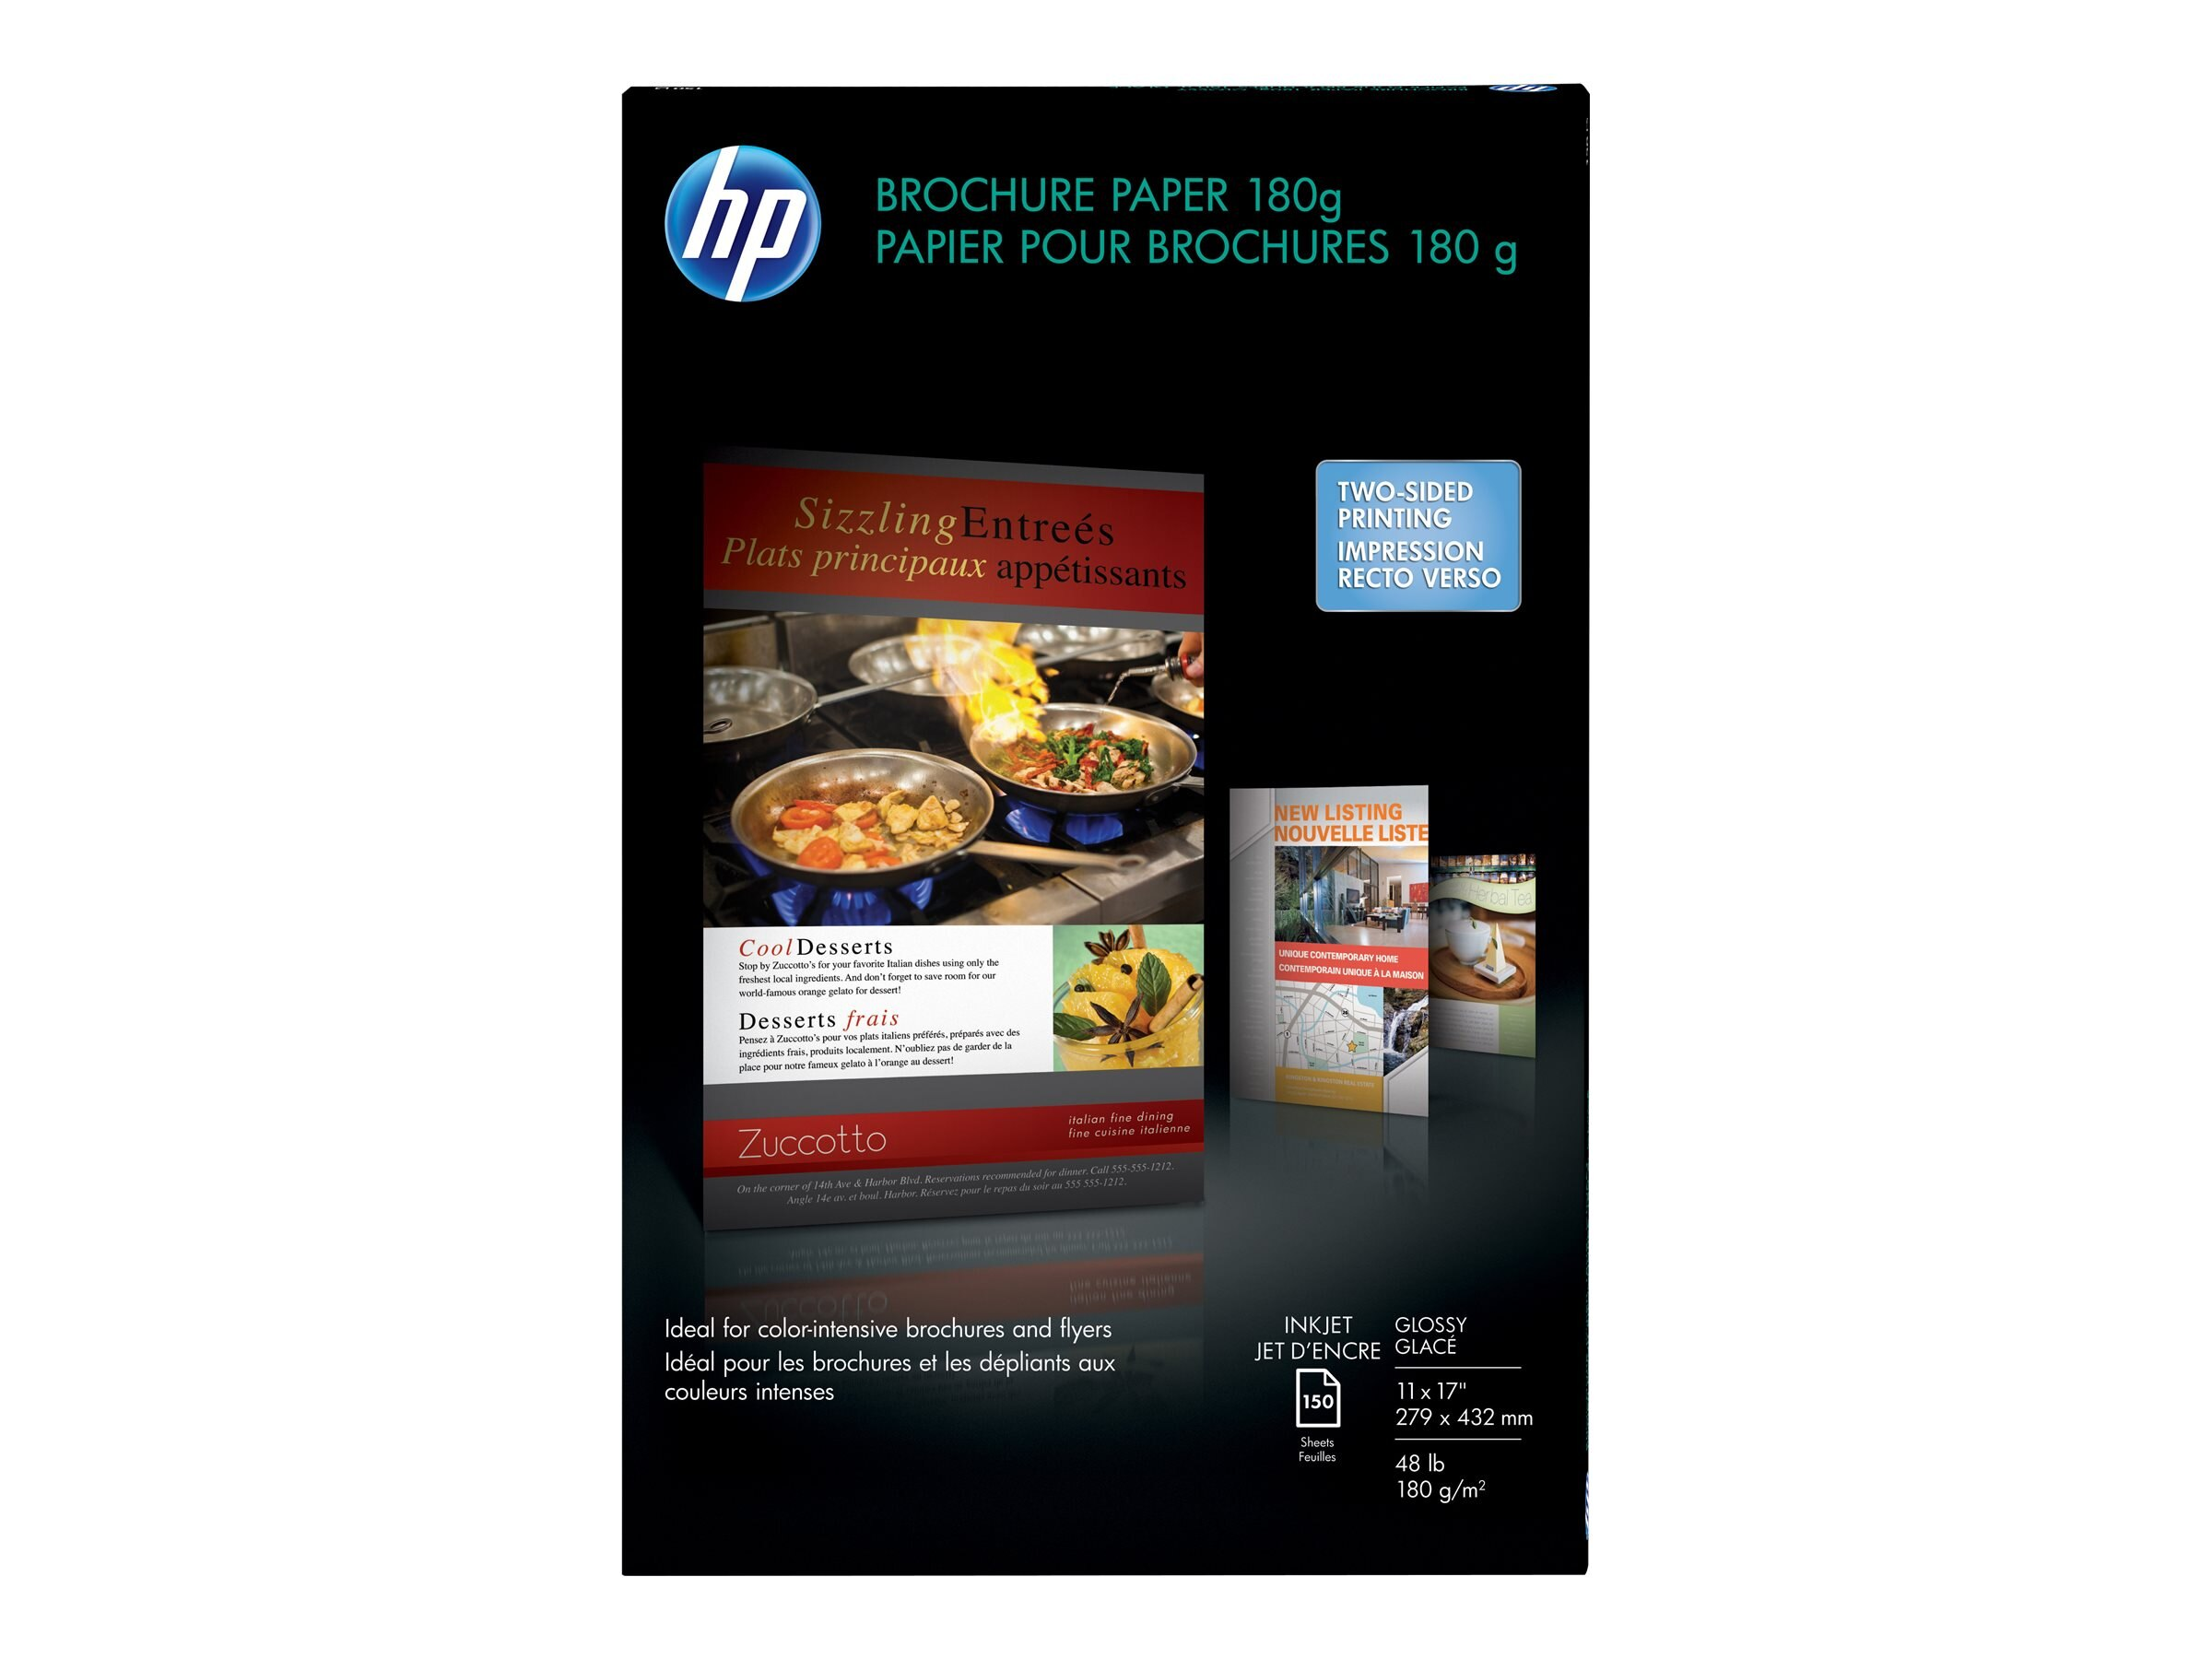 HP Inc. CG932A Image 1